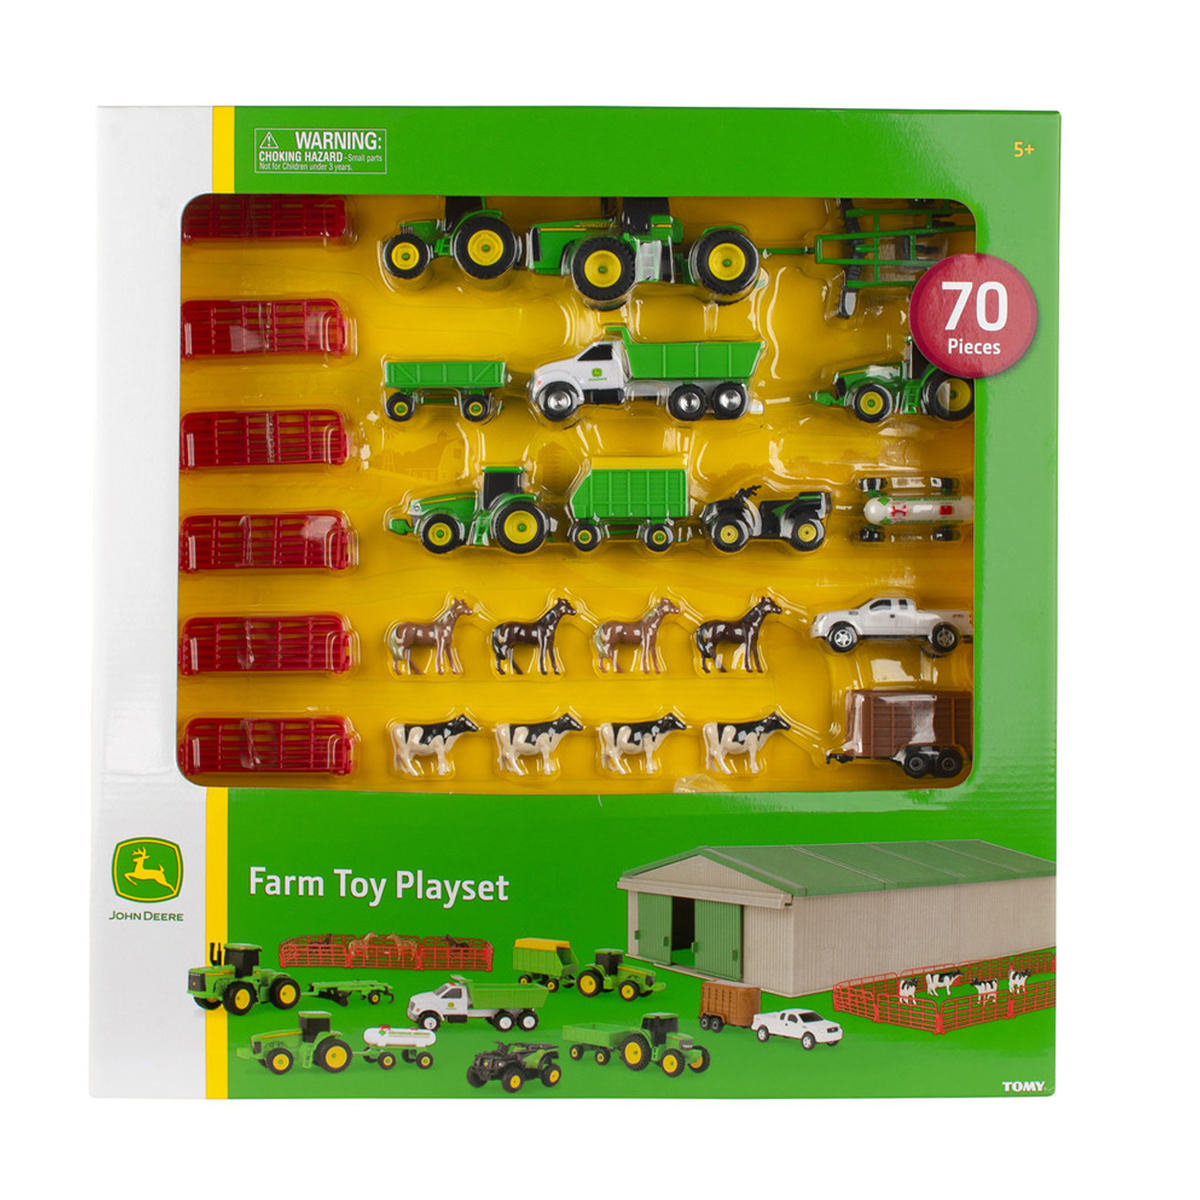 Tomy Ertl John Deere Farm Toy Value Playset With 70 Pieces At Toys R Us